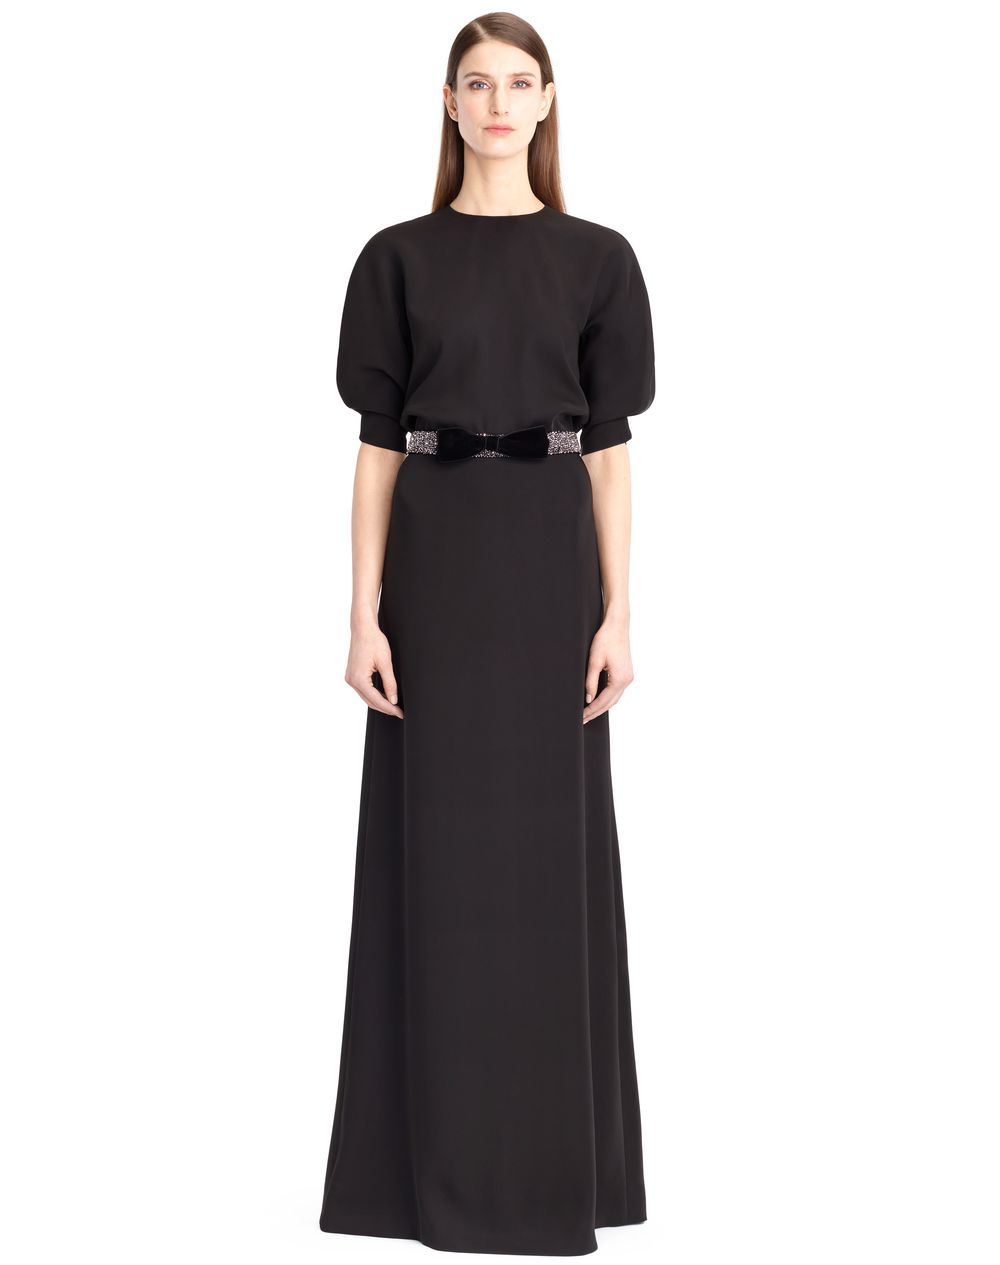 SATIN SABLE DRESS - Lanvin